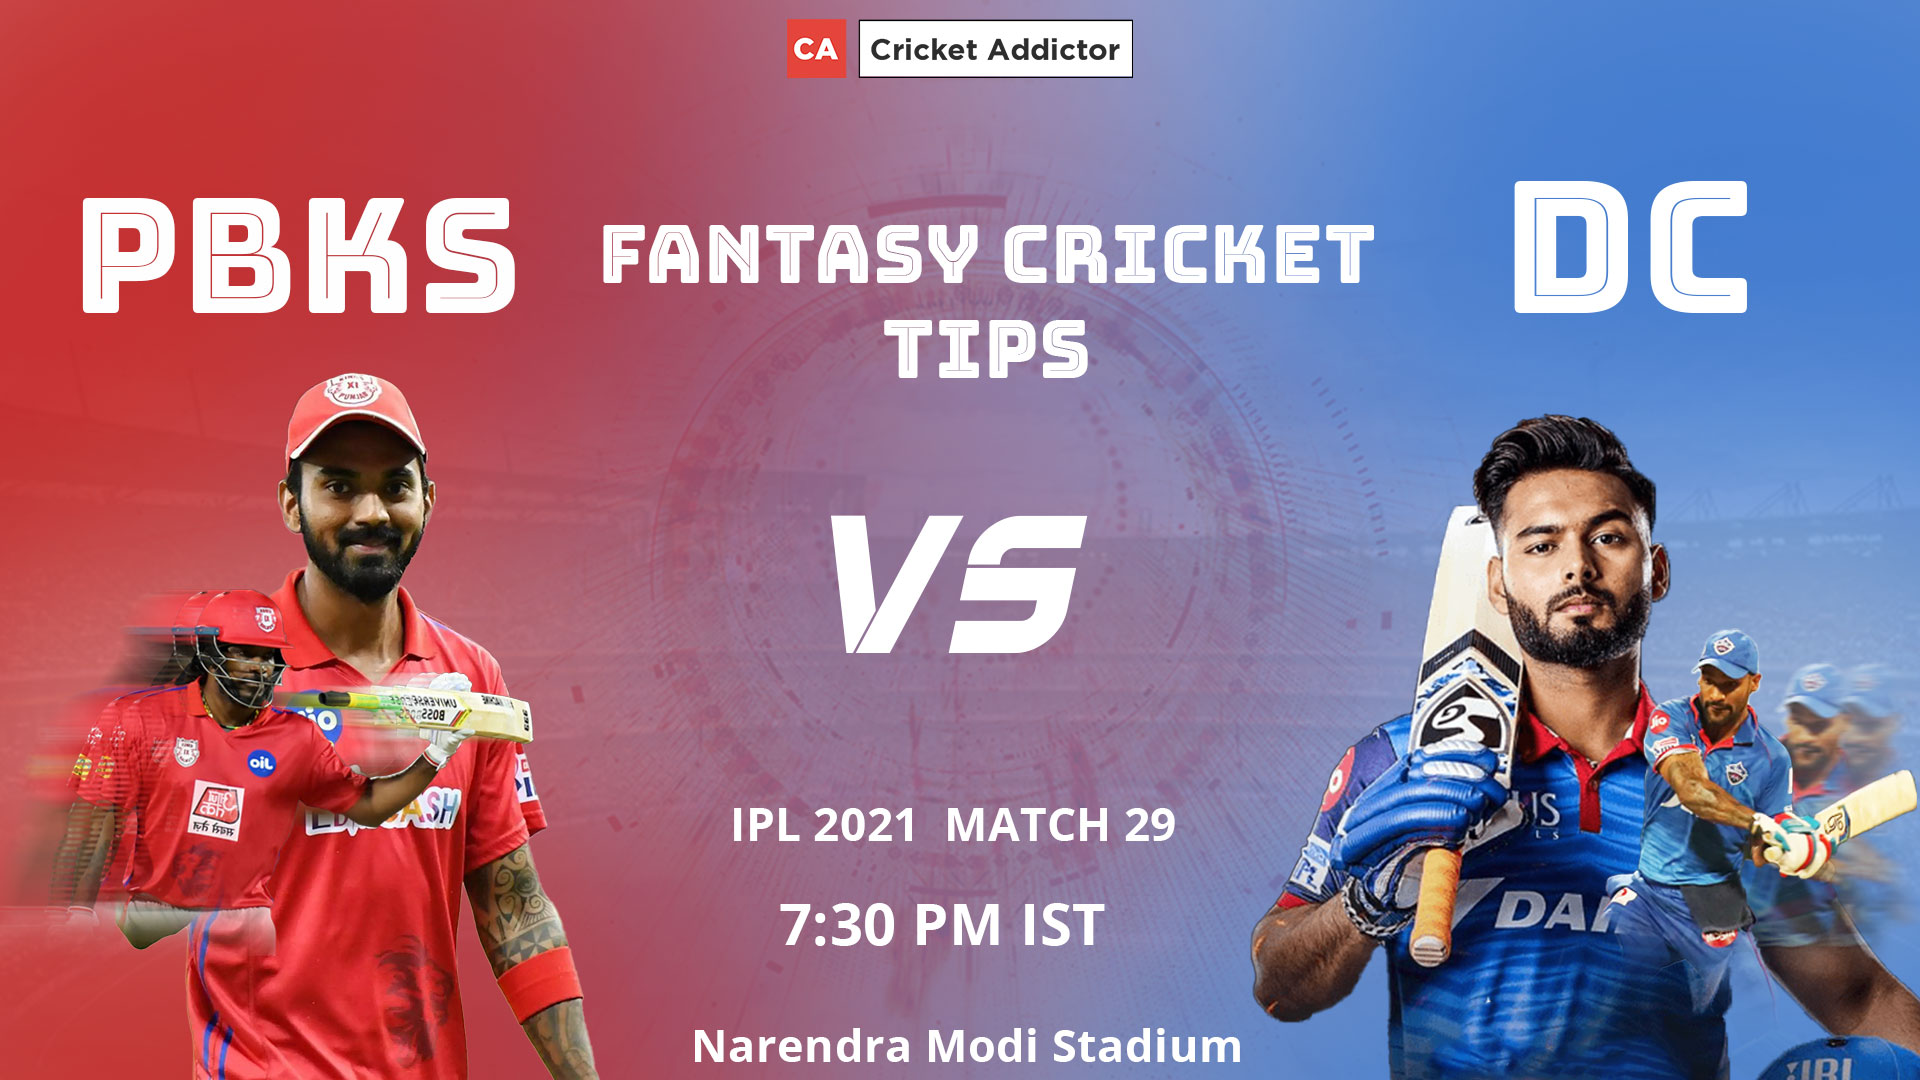 Punjab Kings (PBKS) vs Delhi Capitals (DC) Dream11 Prediction, Fantasy Cricket Tips, Playing XI, Pitch Report, Dream11 Team, Injury Update of VIVO IPL 2021.